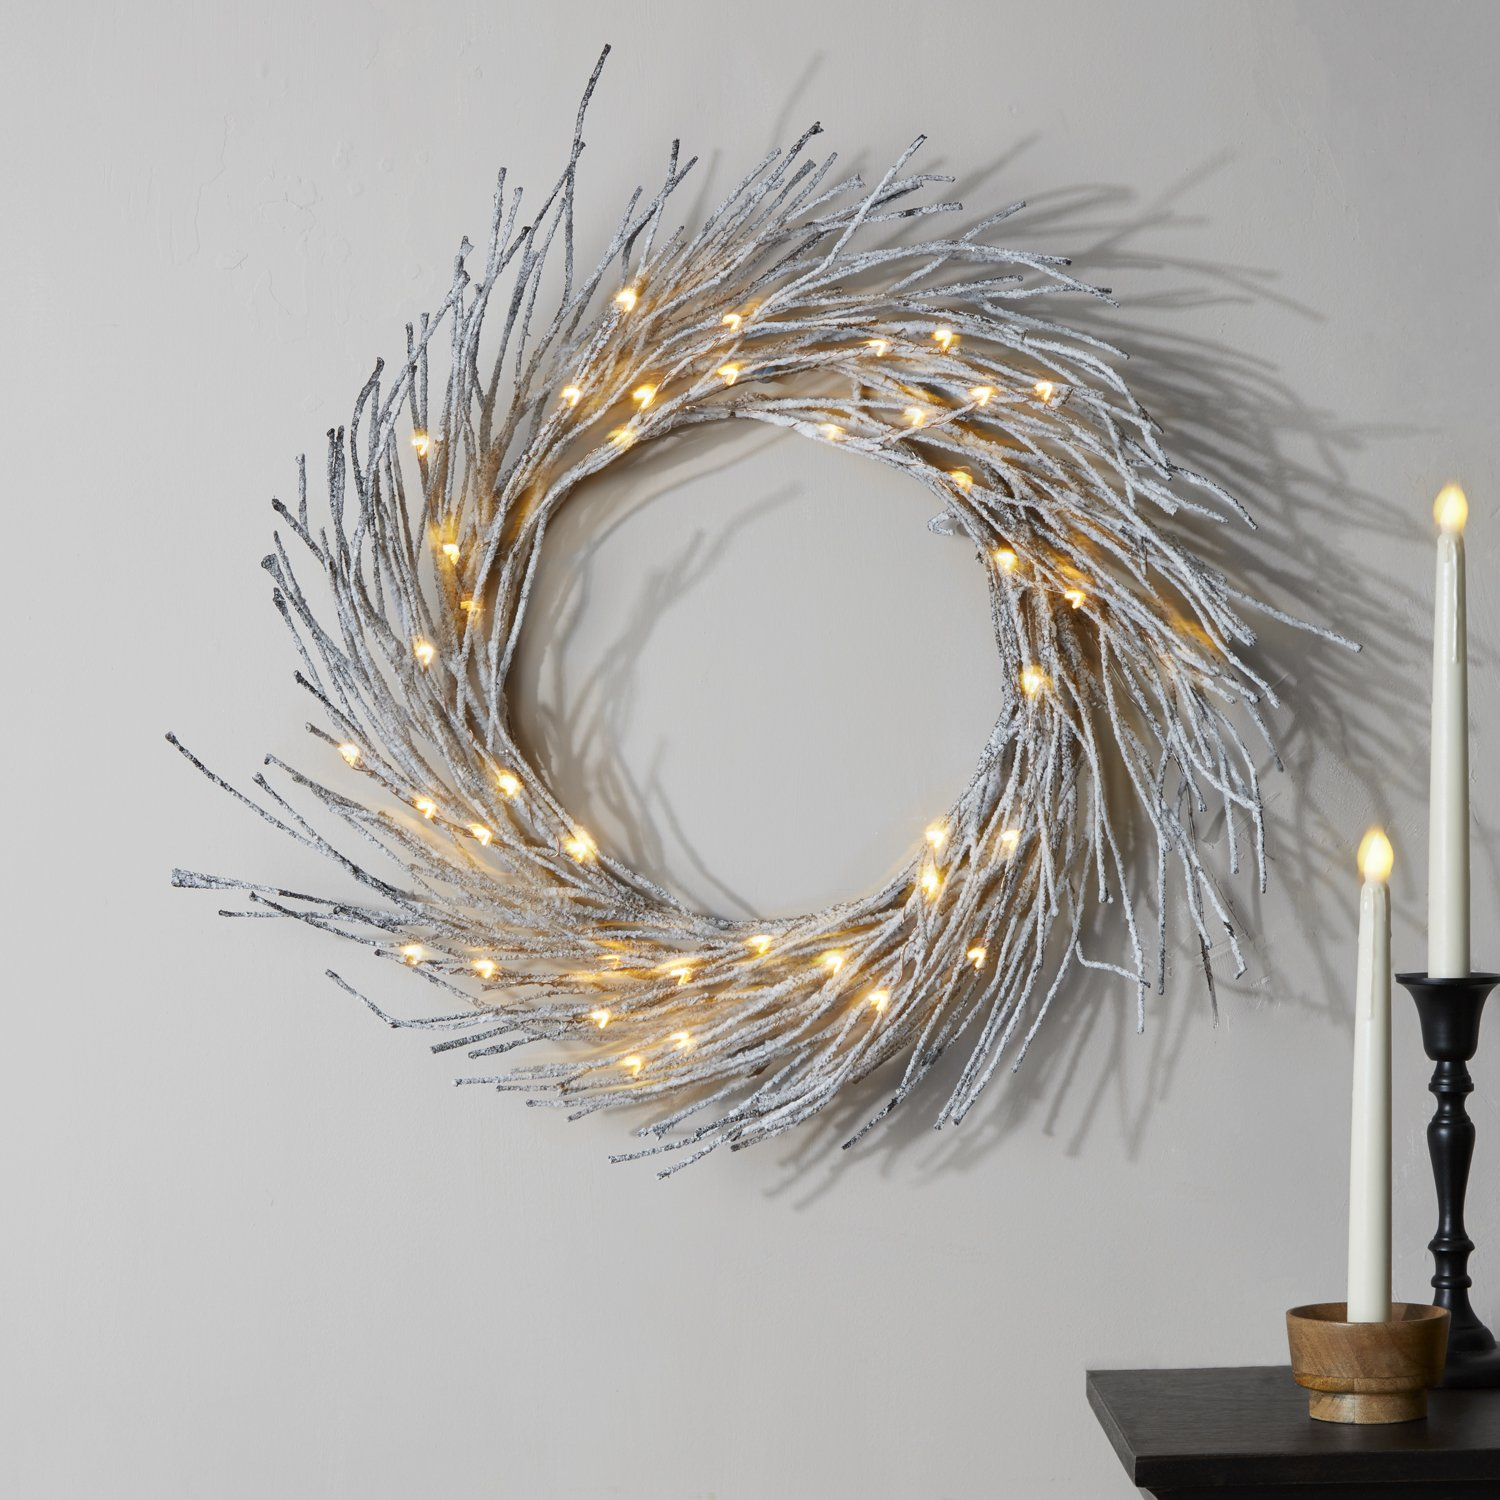 LampLust Pre-lit Flocked Snow Wreath, 42 Warm White LED Lights | 23 Inches, Bendable Wires, Indoor Use, Timer Option, Battery Operated by LampLust